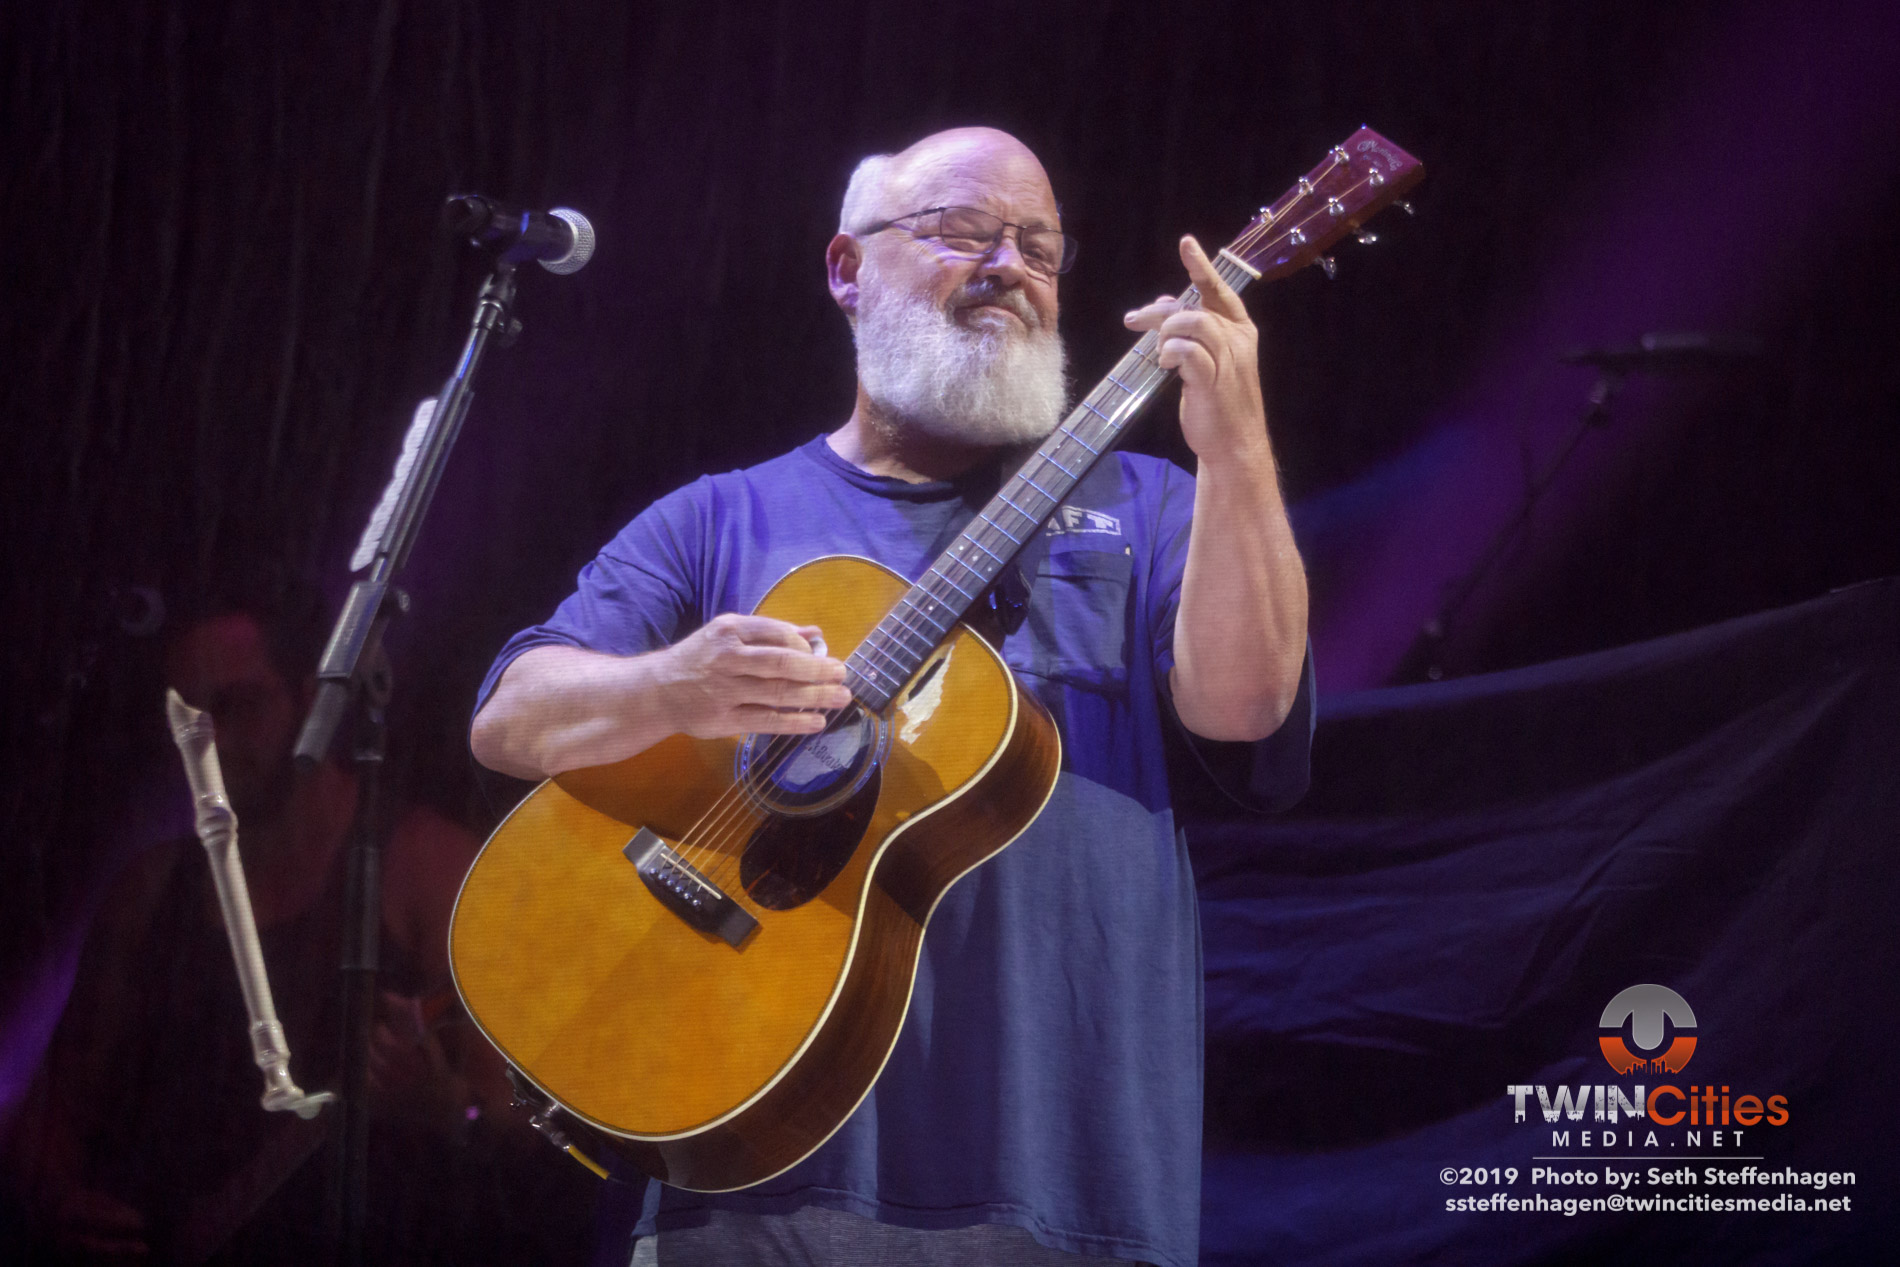 July 30, 2019 - Saint Paul, Minnesota, United States - Tenacious D live in concert at the Palace Theatre along with Wynchester as the openers.  (Photo by Seth Steffenhagen/Steffenhagen Photography)